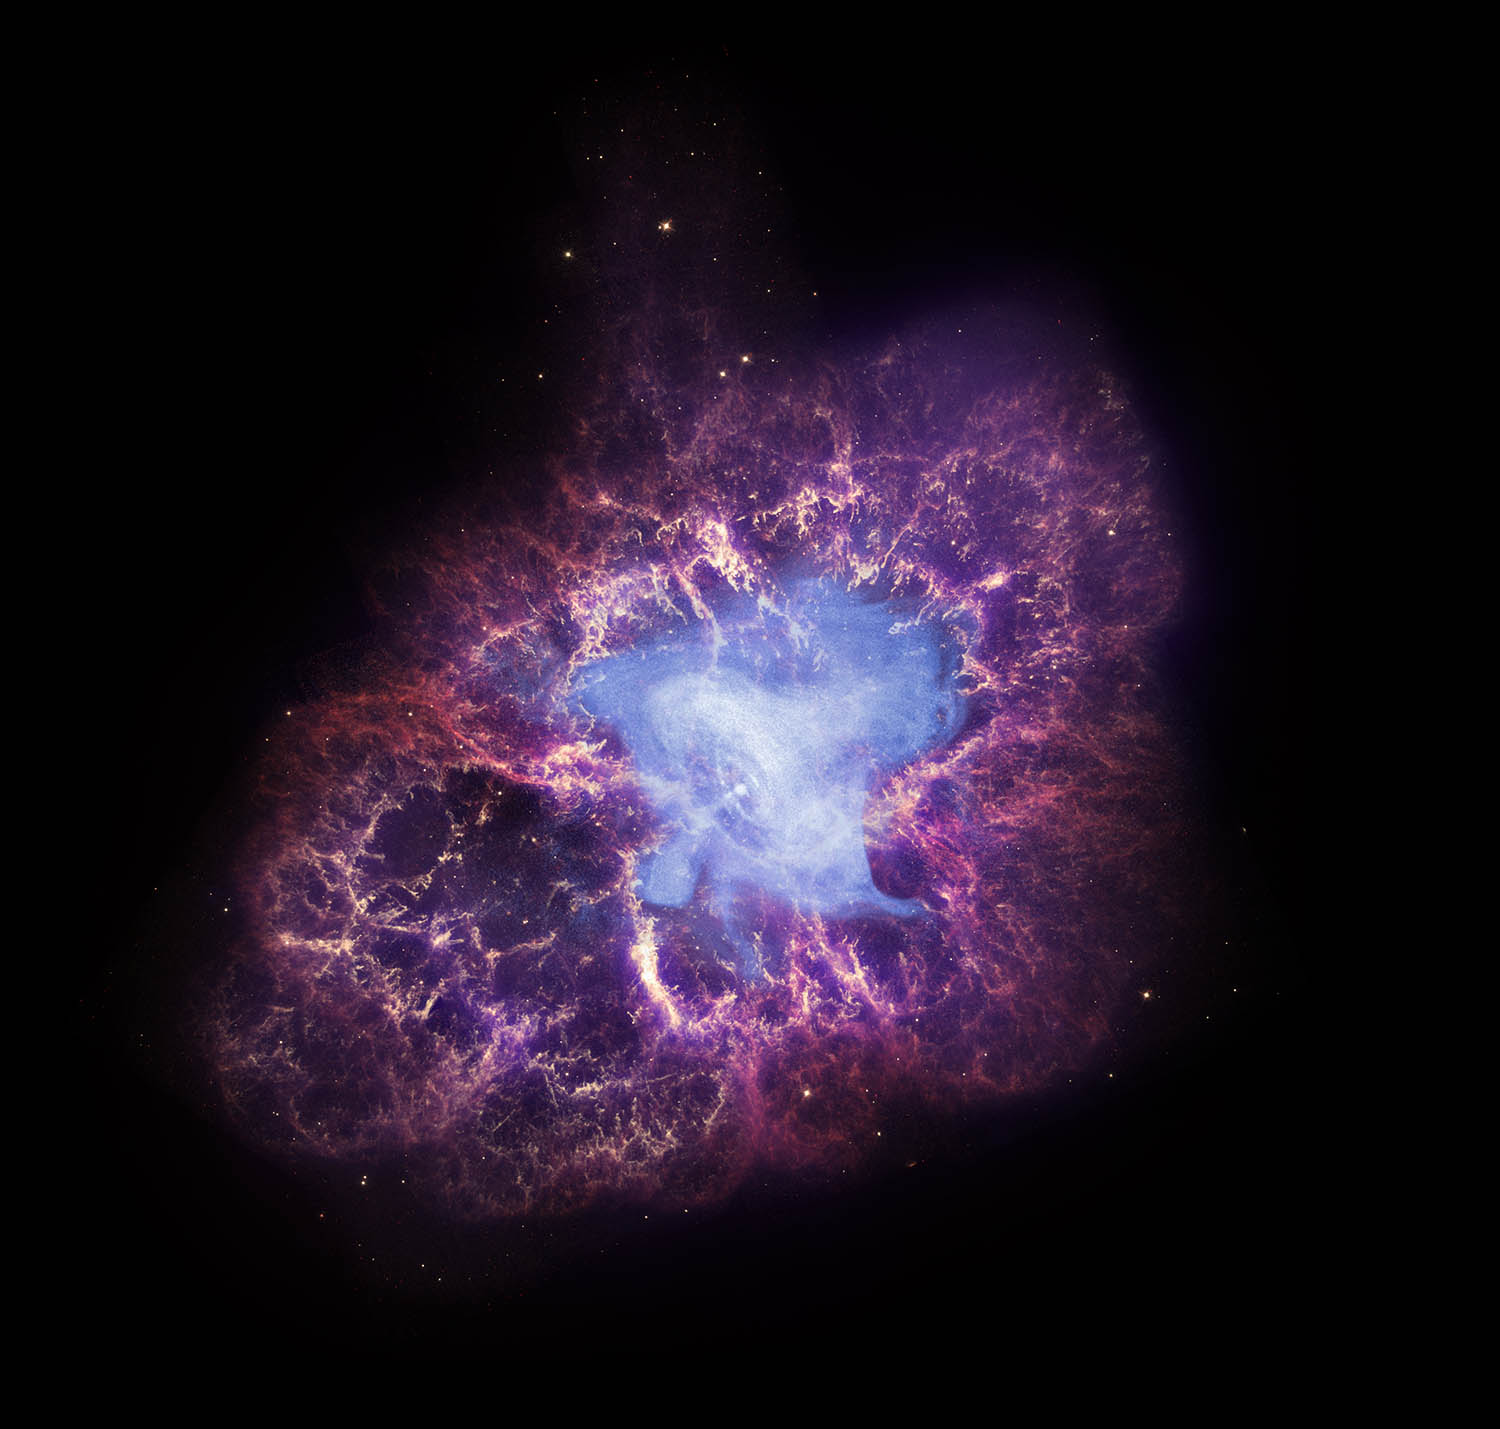 Crab Nebula Nasa 2270 Hd Wallpapers in Space   Imagescicom 1500x1429